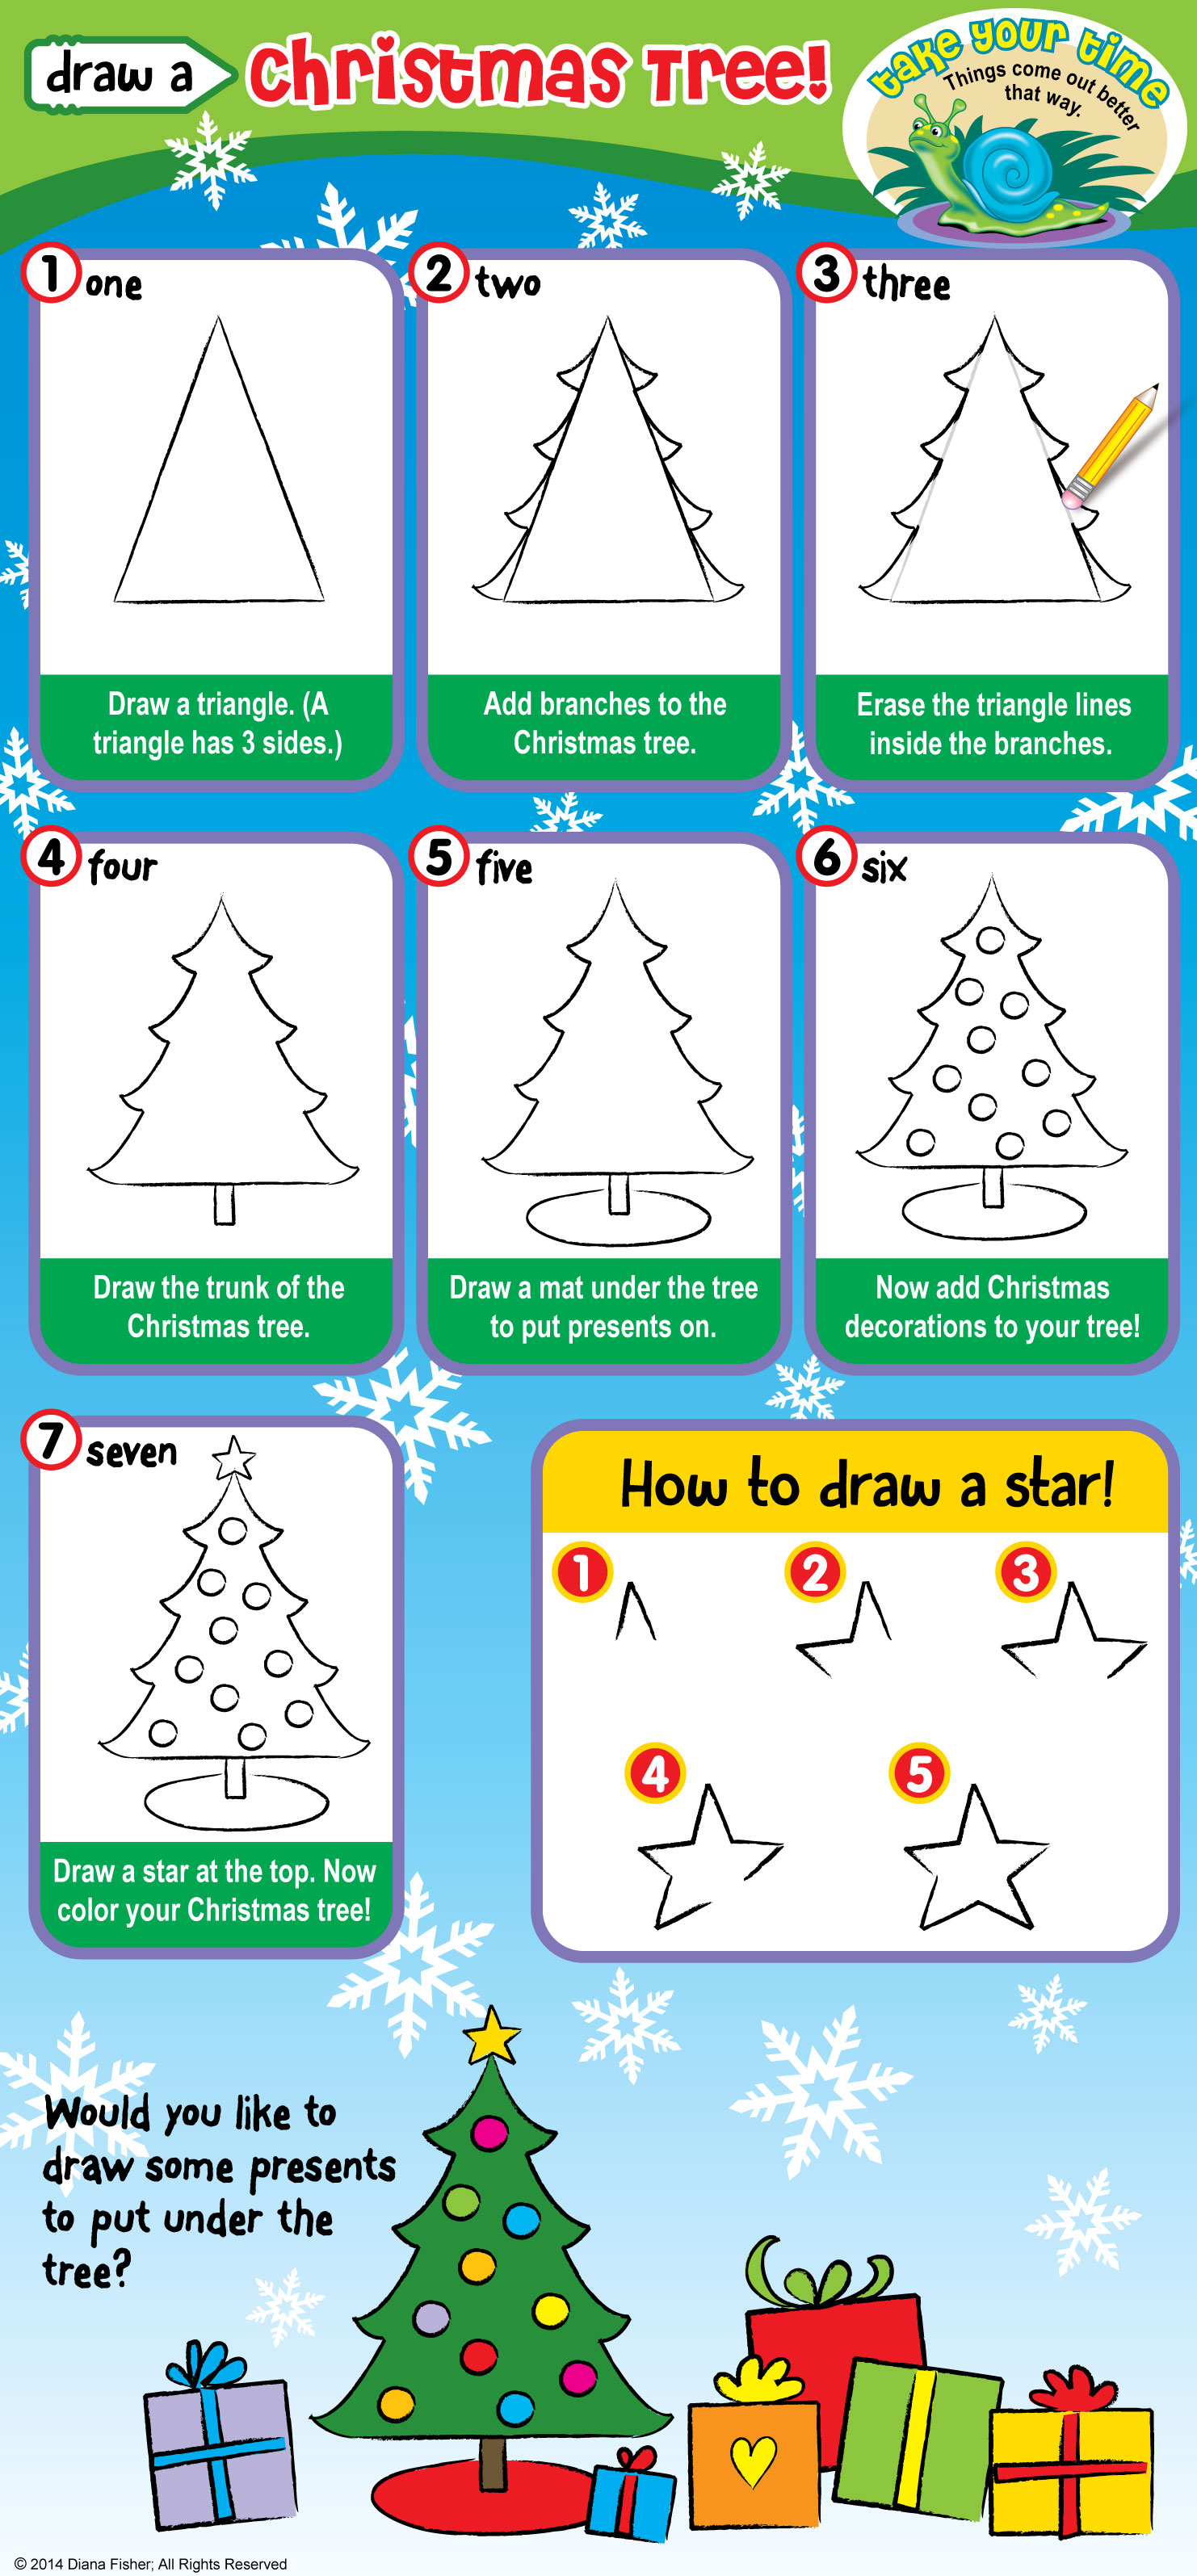 steps to draw a Christmas tree and stars